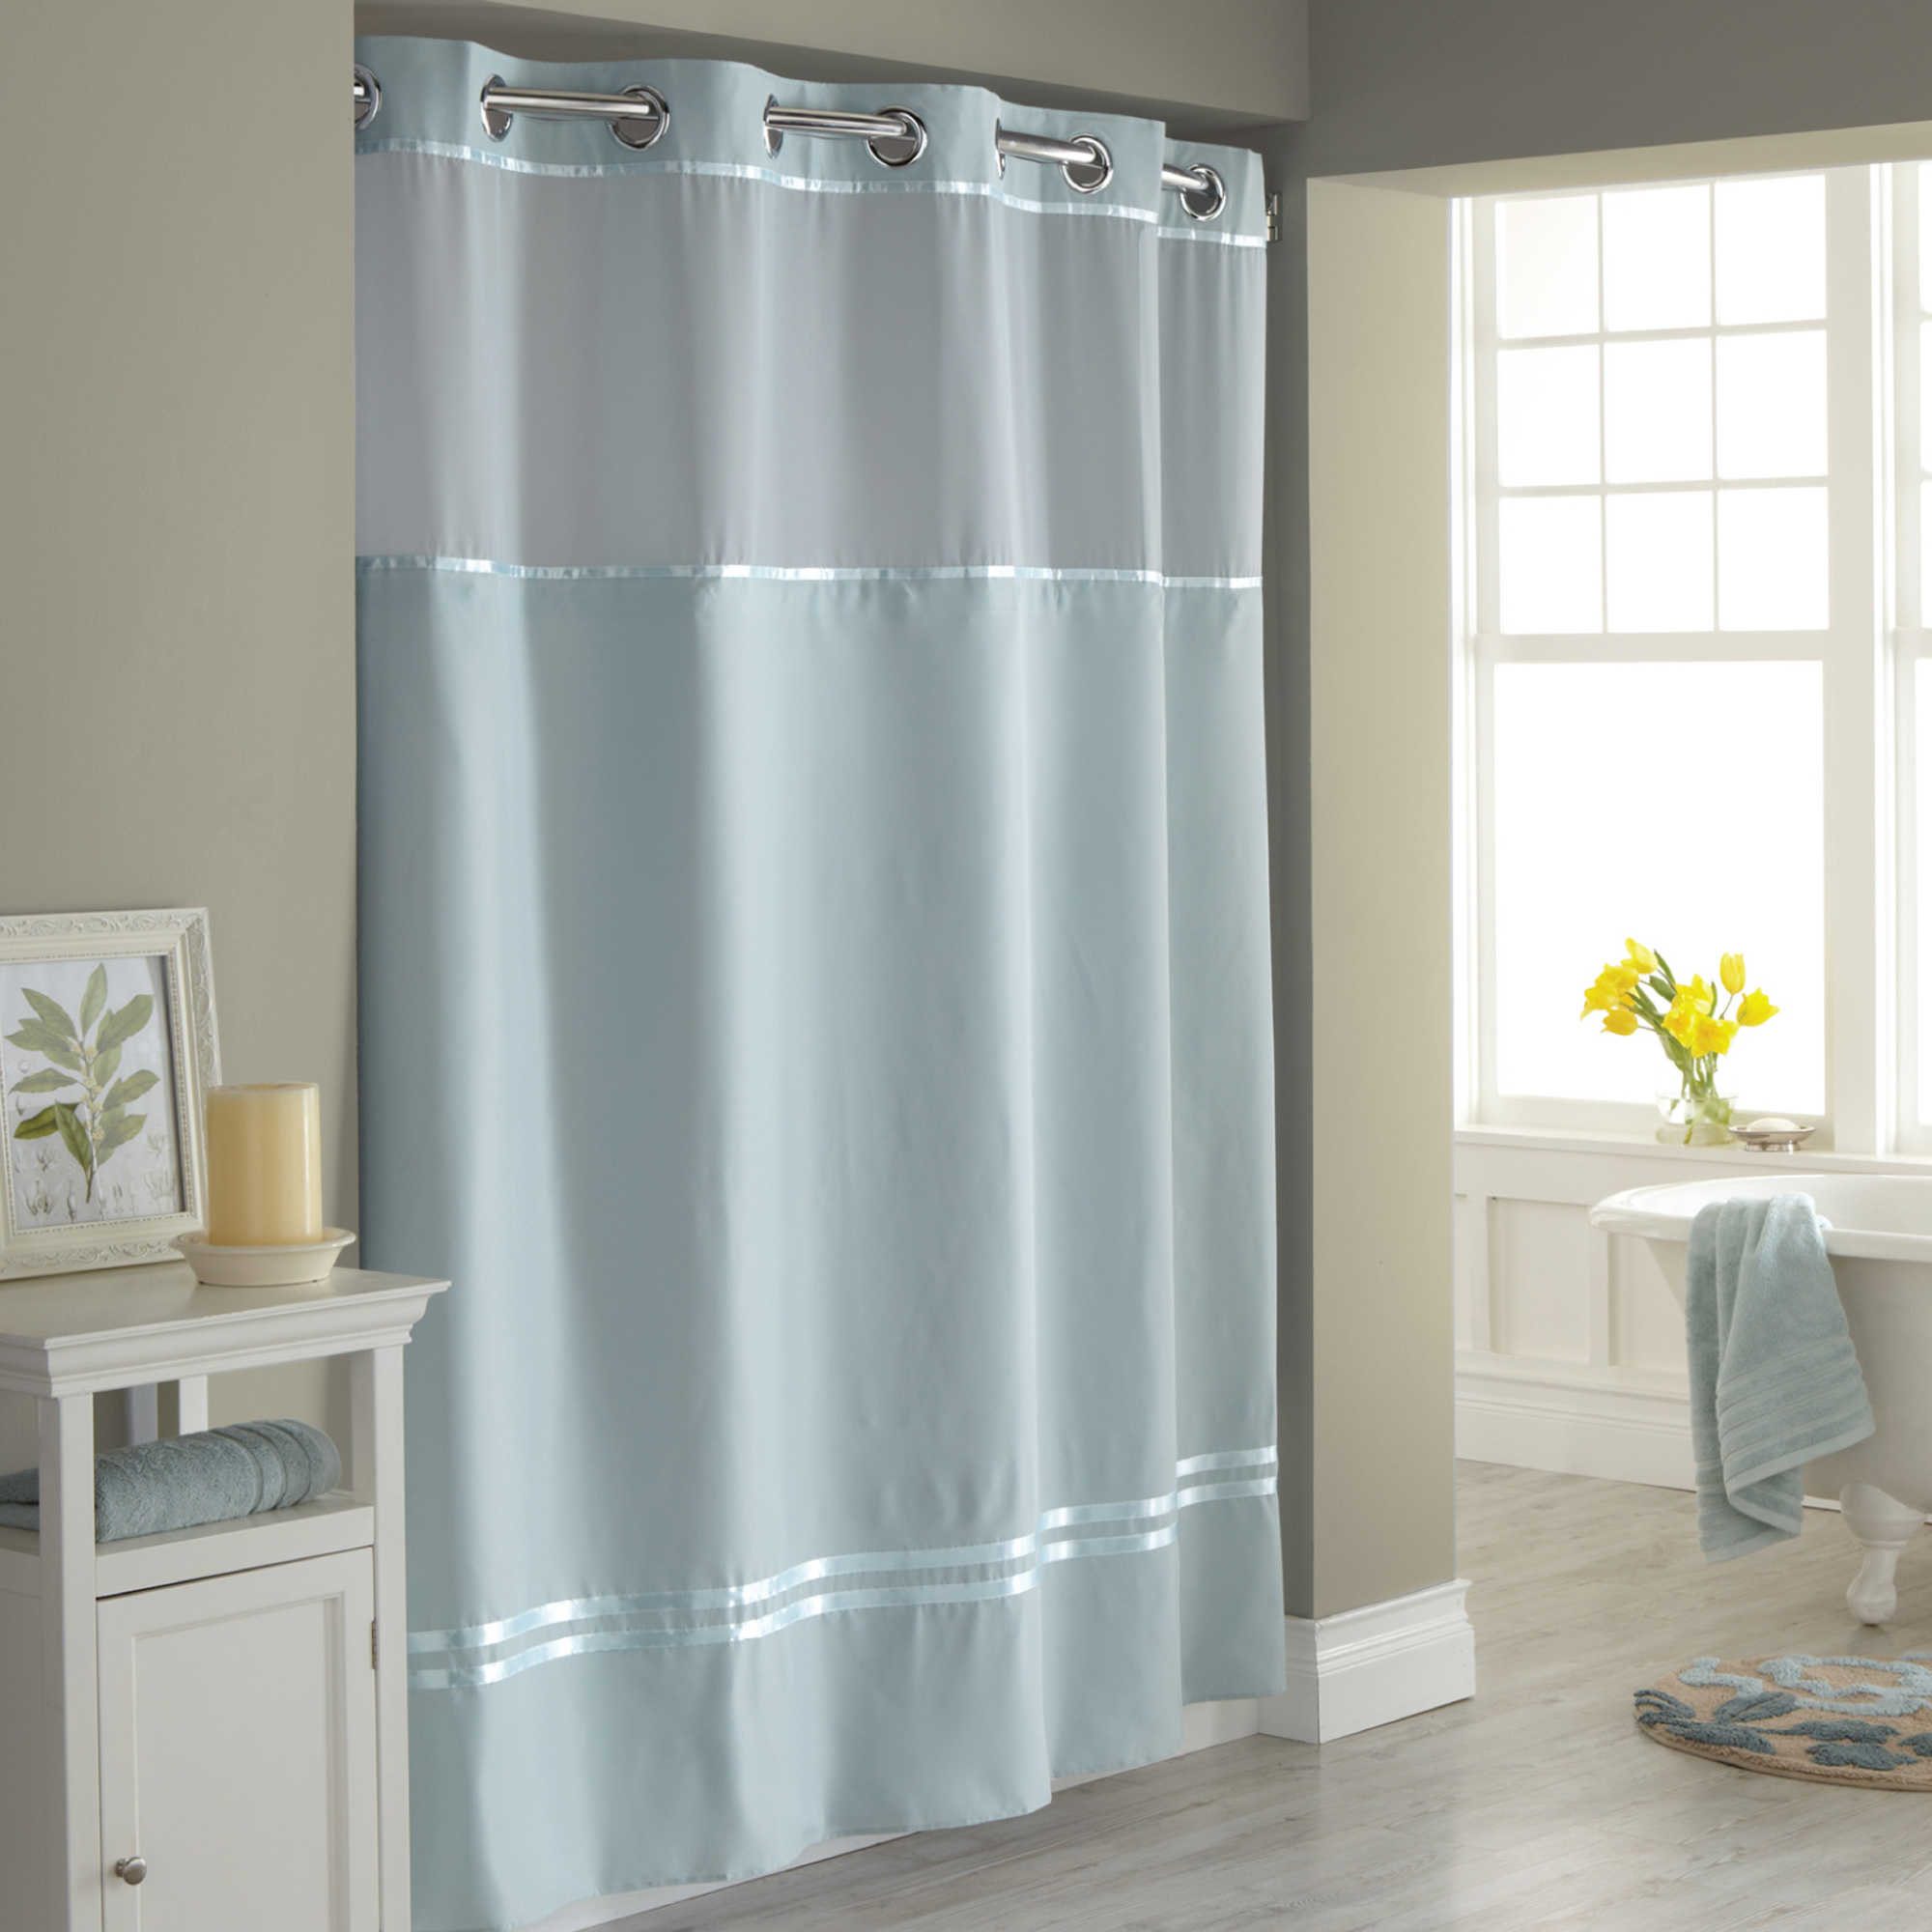 Simple Ideas Long Shower Curtain Rod Projects Hanging Our Higher Within Size 2000 X